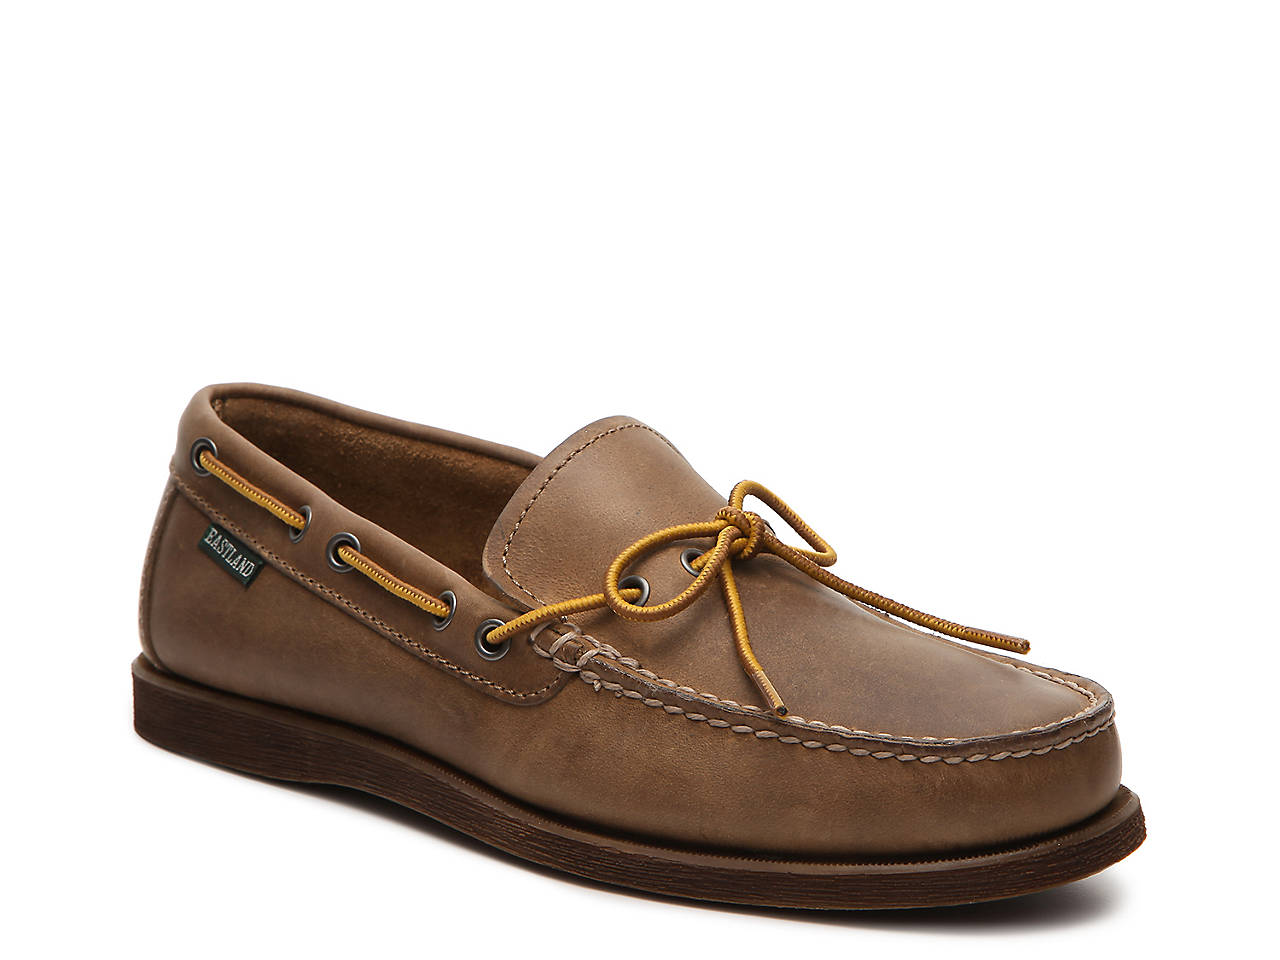 72c29fafbbe6f7 Eastland Yarmouth Boat Shoe Men s Shoes